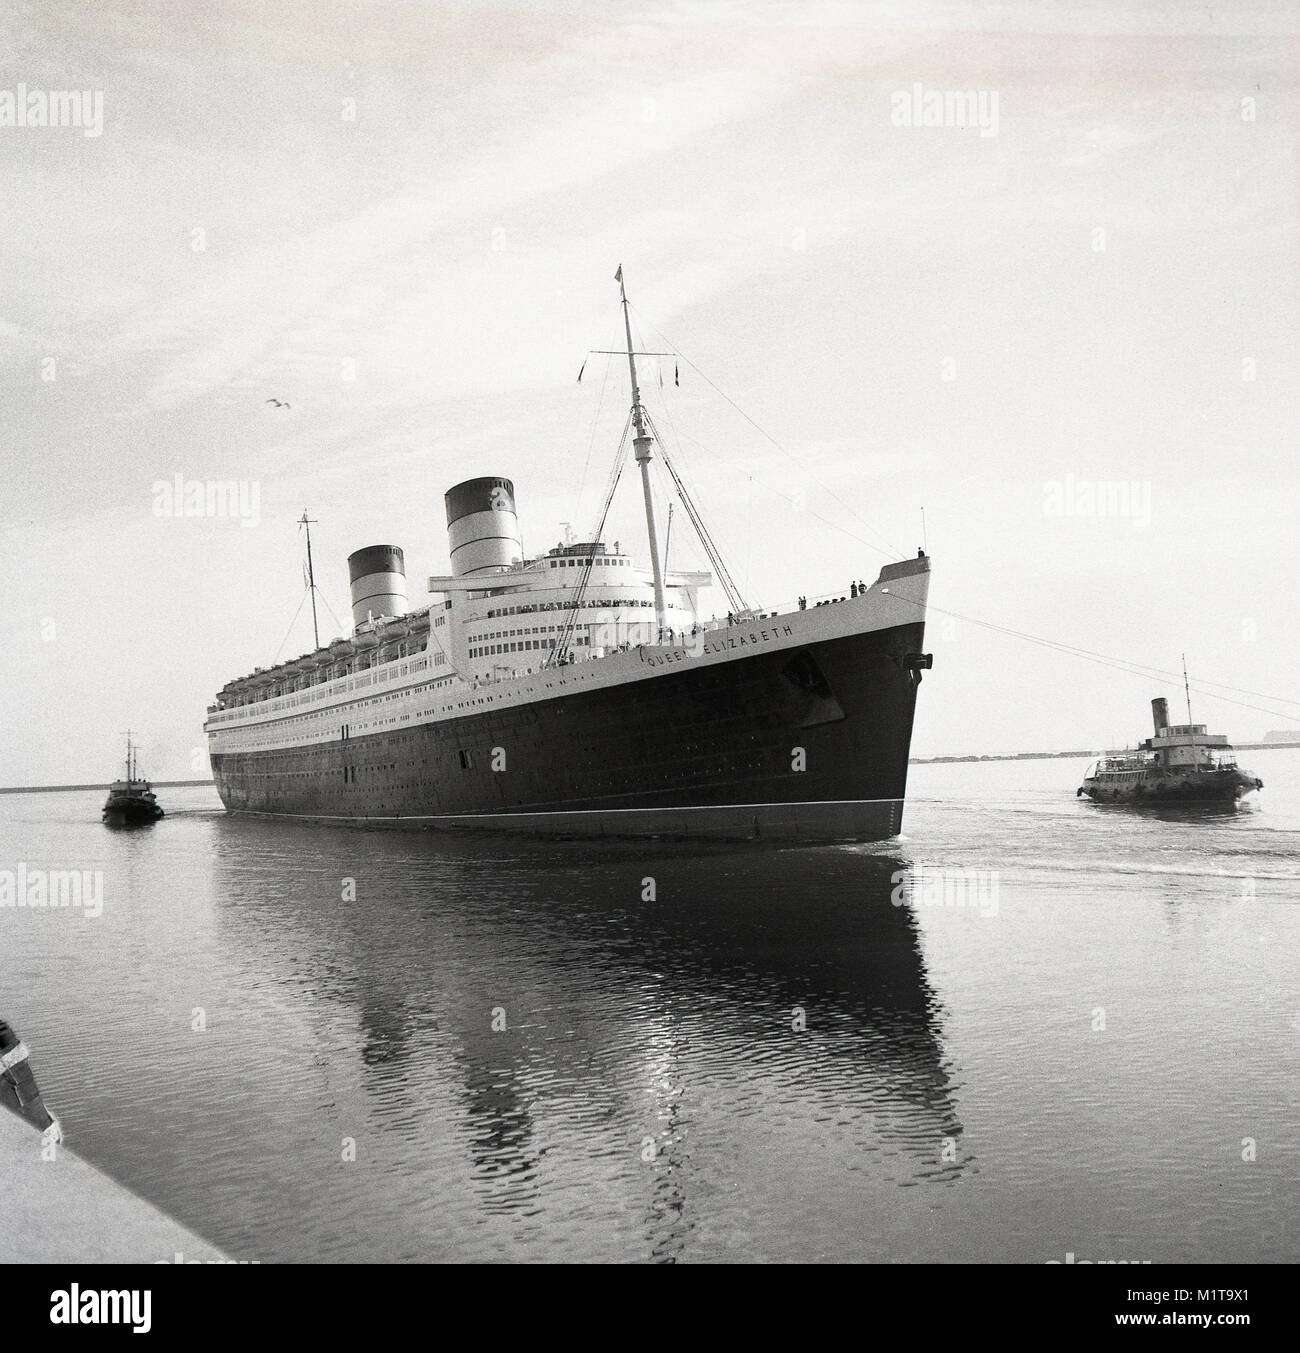 1950s, historical, tugboats pull the RMS Queen Elizabeth ocean liner into the calm waters of Southampton docks, - Stock Image